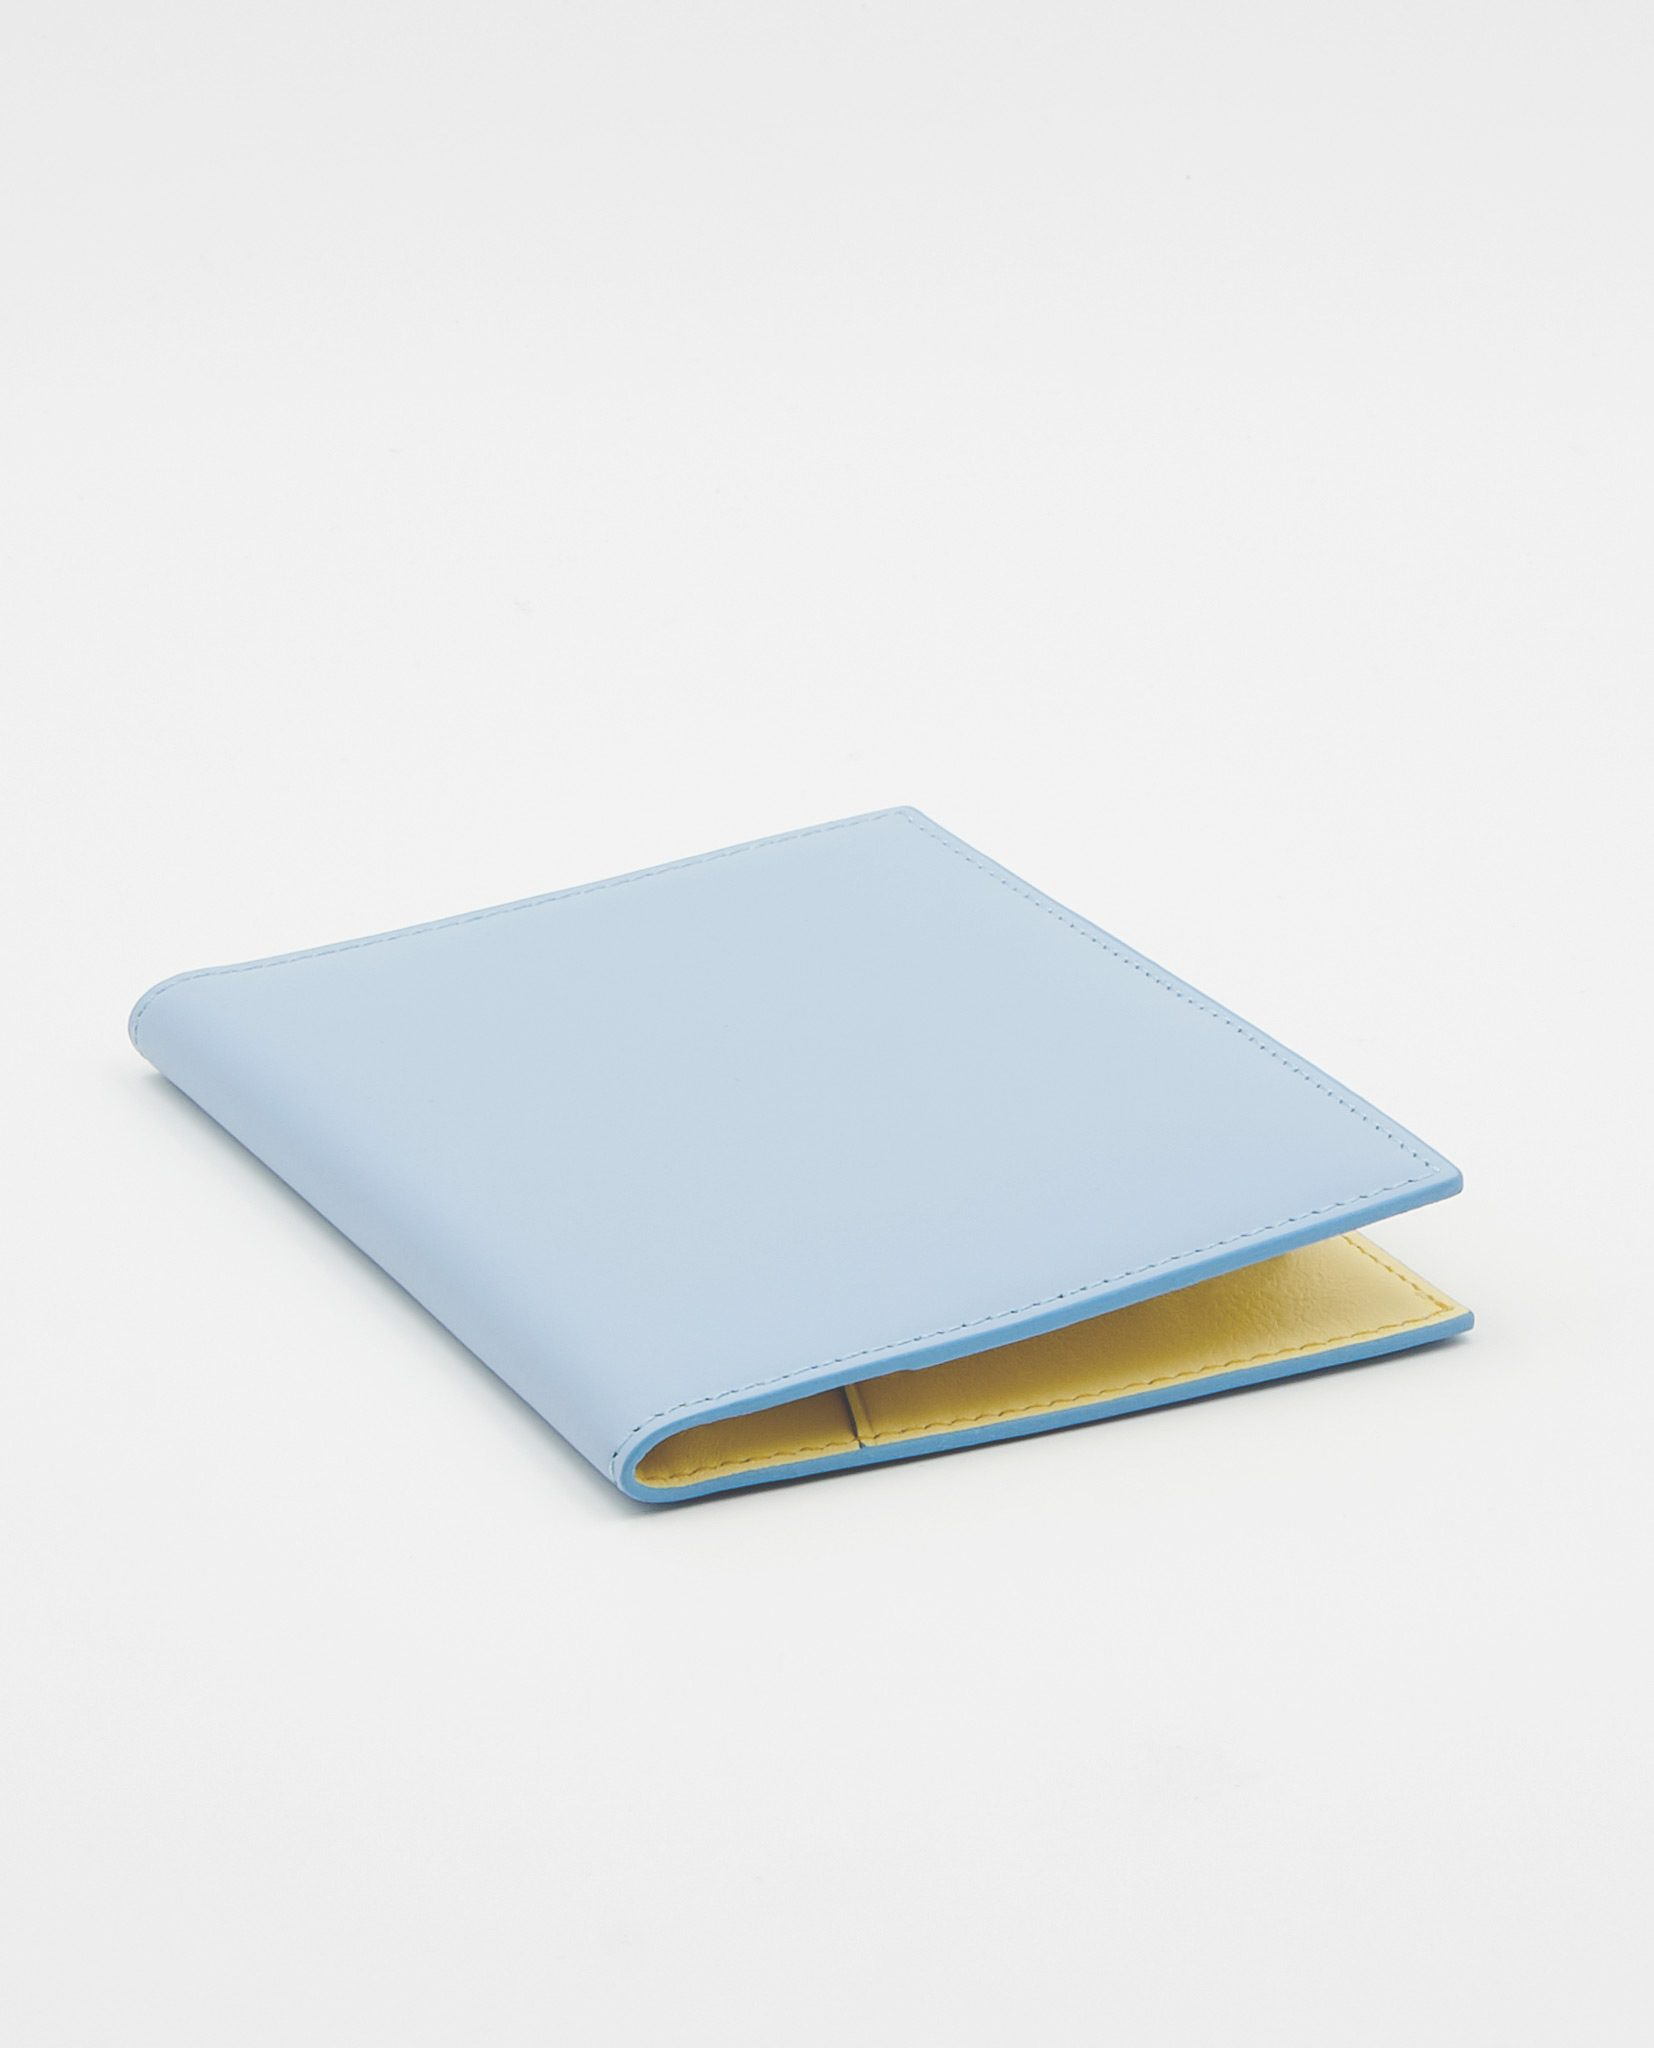 Soofre Smooth Leather Passport Holder Color Pale Blue Light Yellow